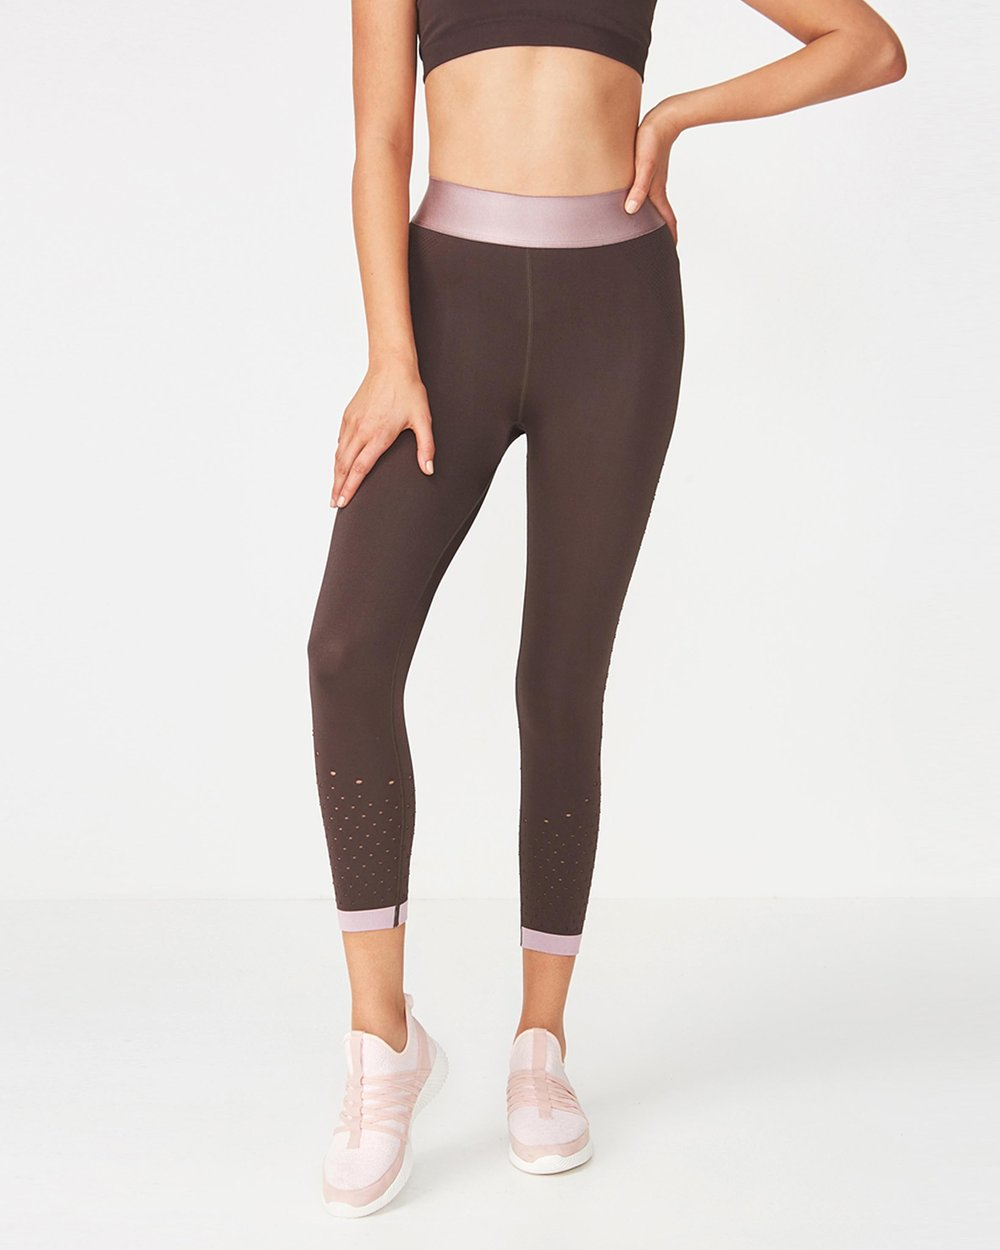 bf0b0e2447efa Jacquard Mesh Seamfree Tights by Cotton On Body Active Online | THE ICONIC  | Australia